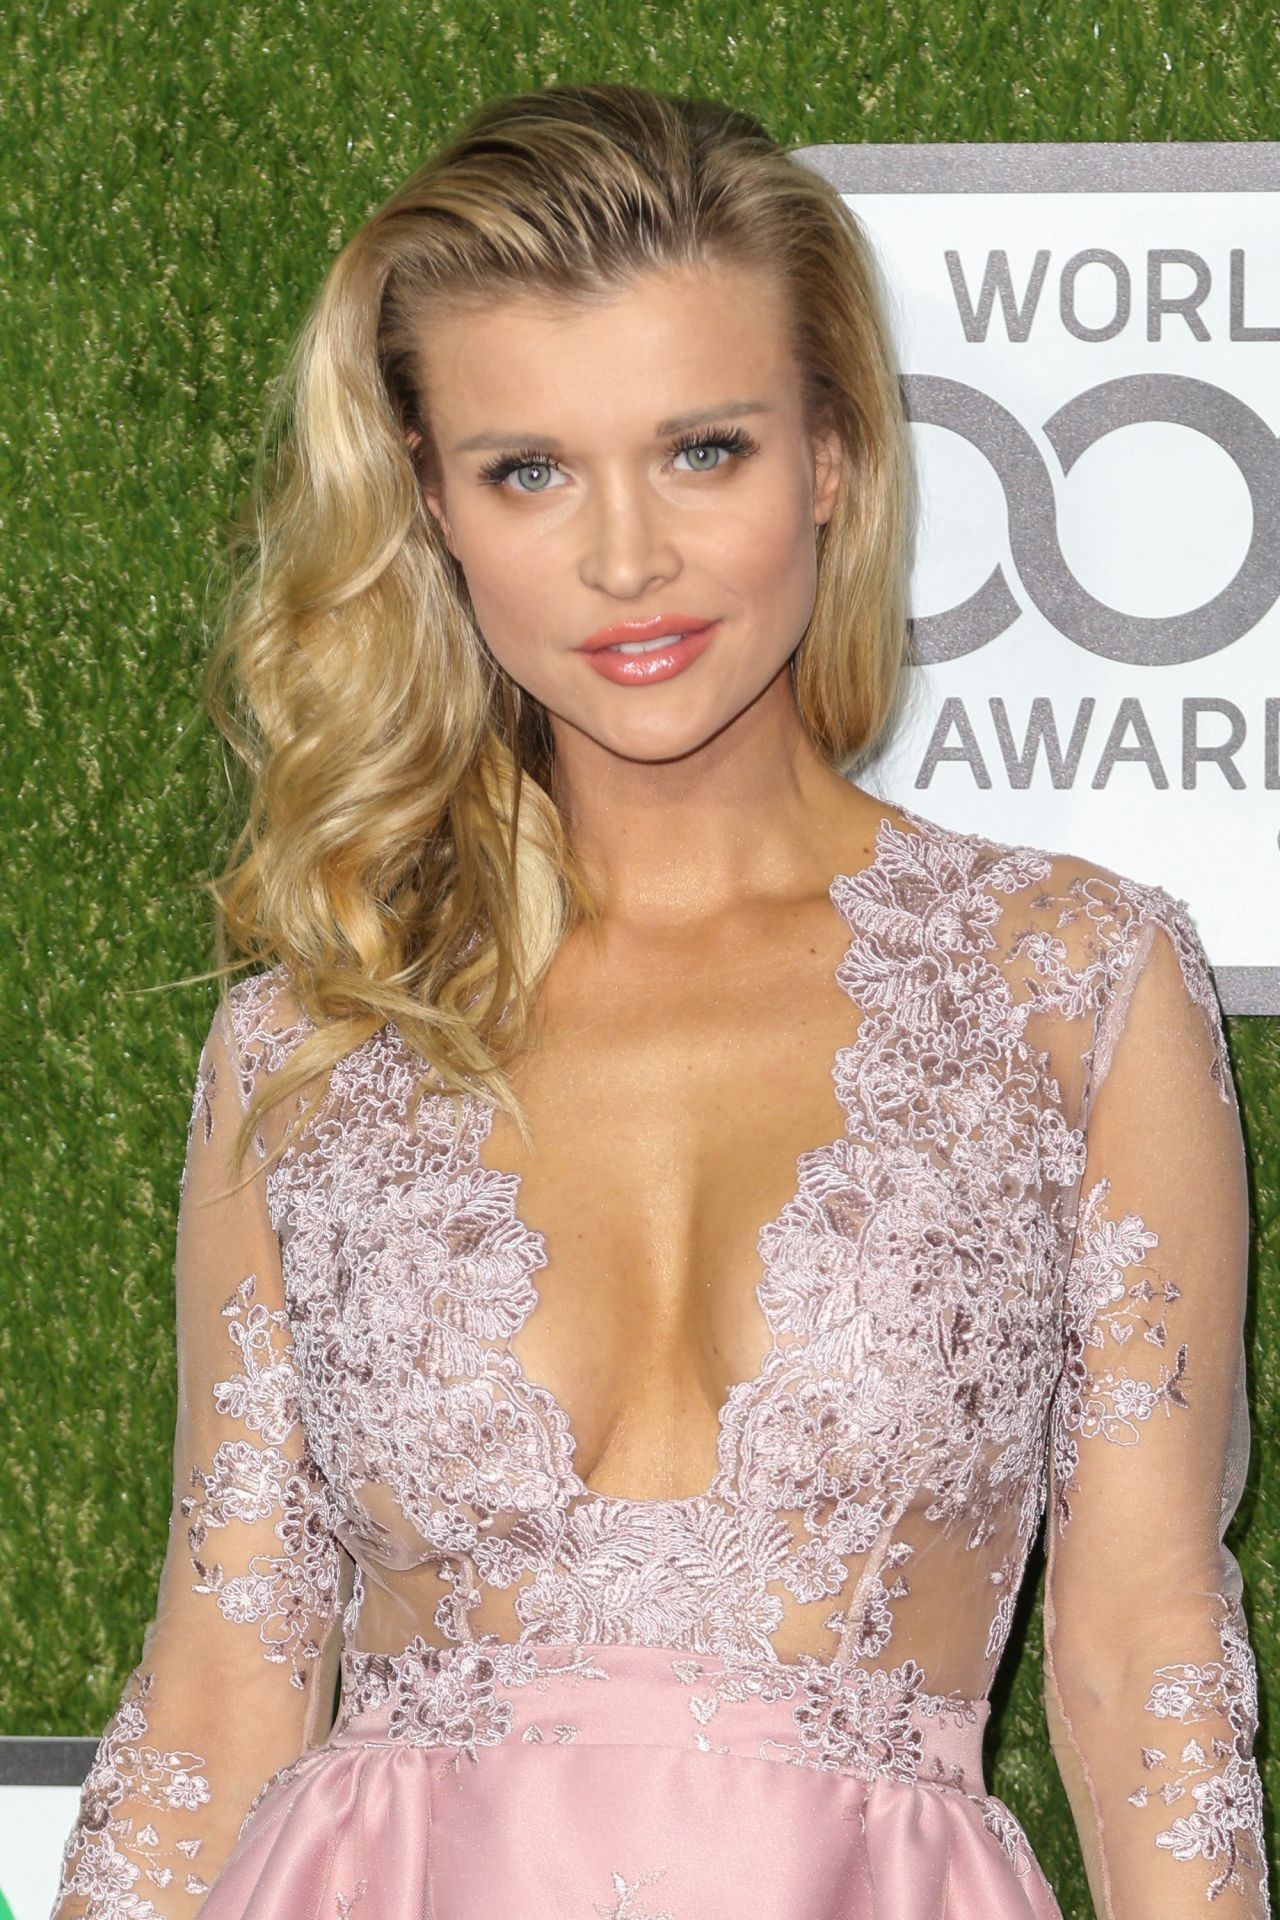 Joanna Krupa 2016 World Dog Awards In Santa Monica